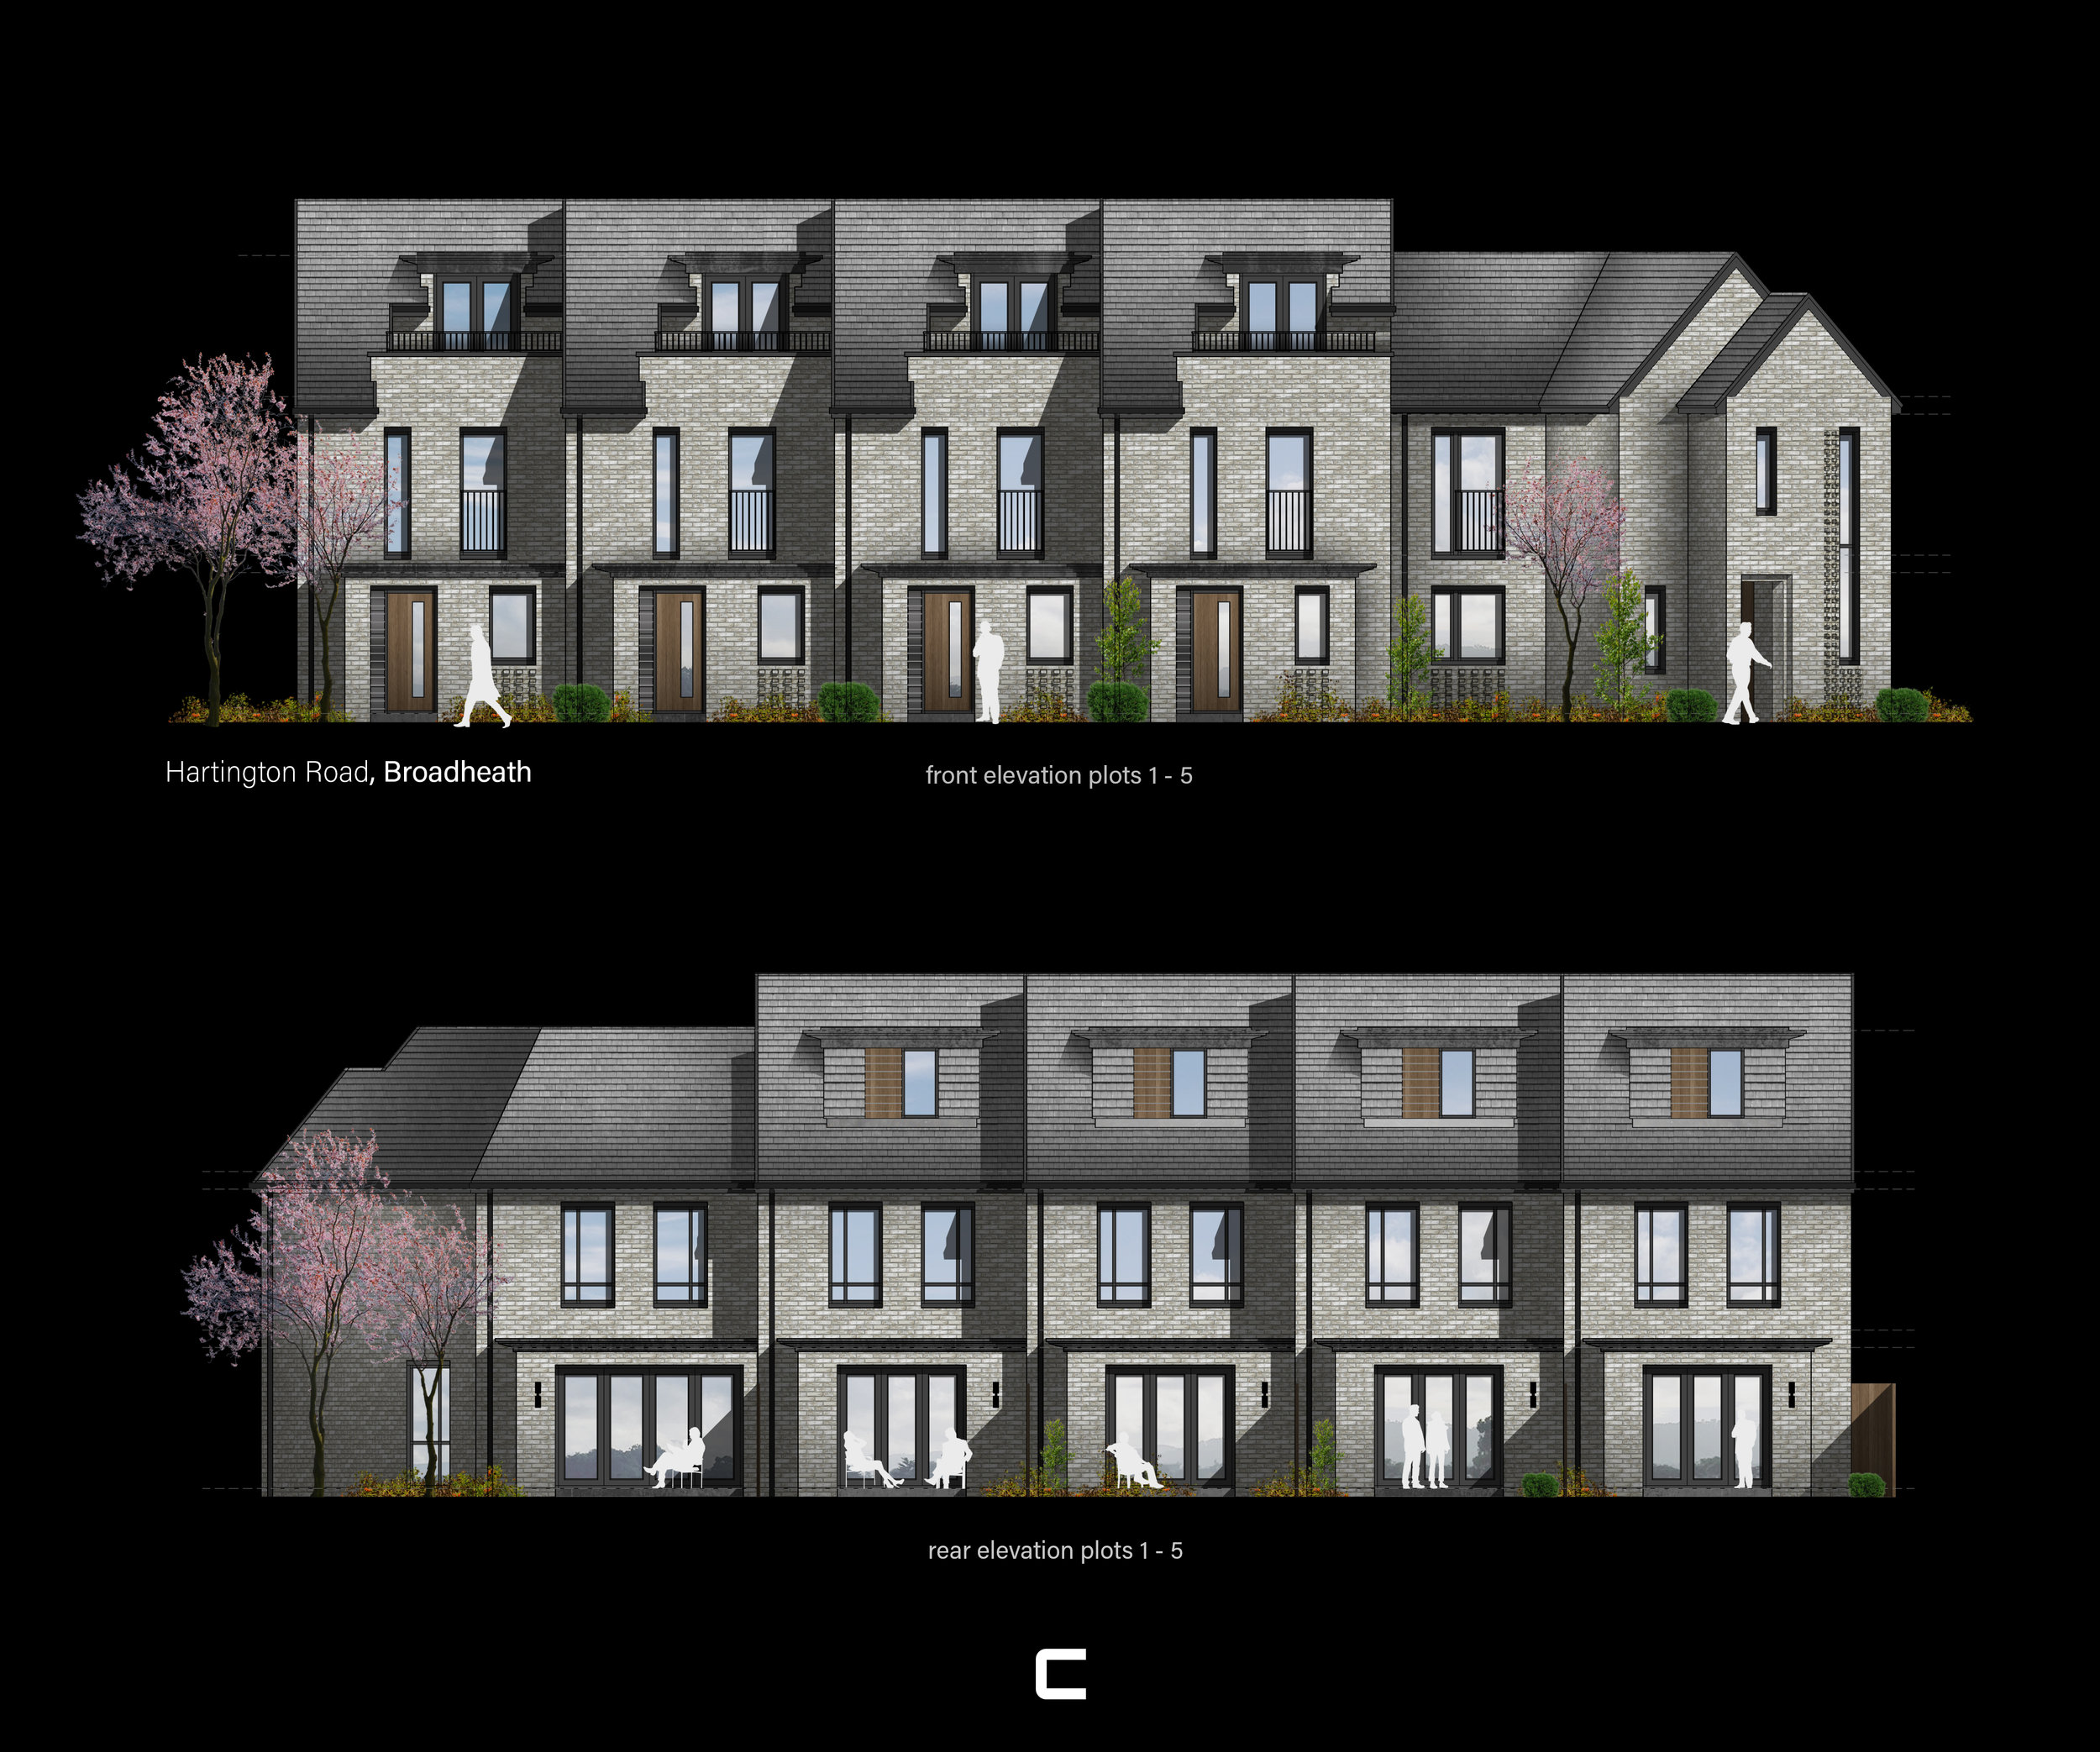 29/11/18    Hartington Road, Broadheath  - With full planning permission now secured, Calderpeel are thrilled to be seeing further progress made on this exciting residential development in the near future.